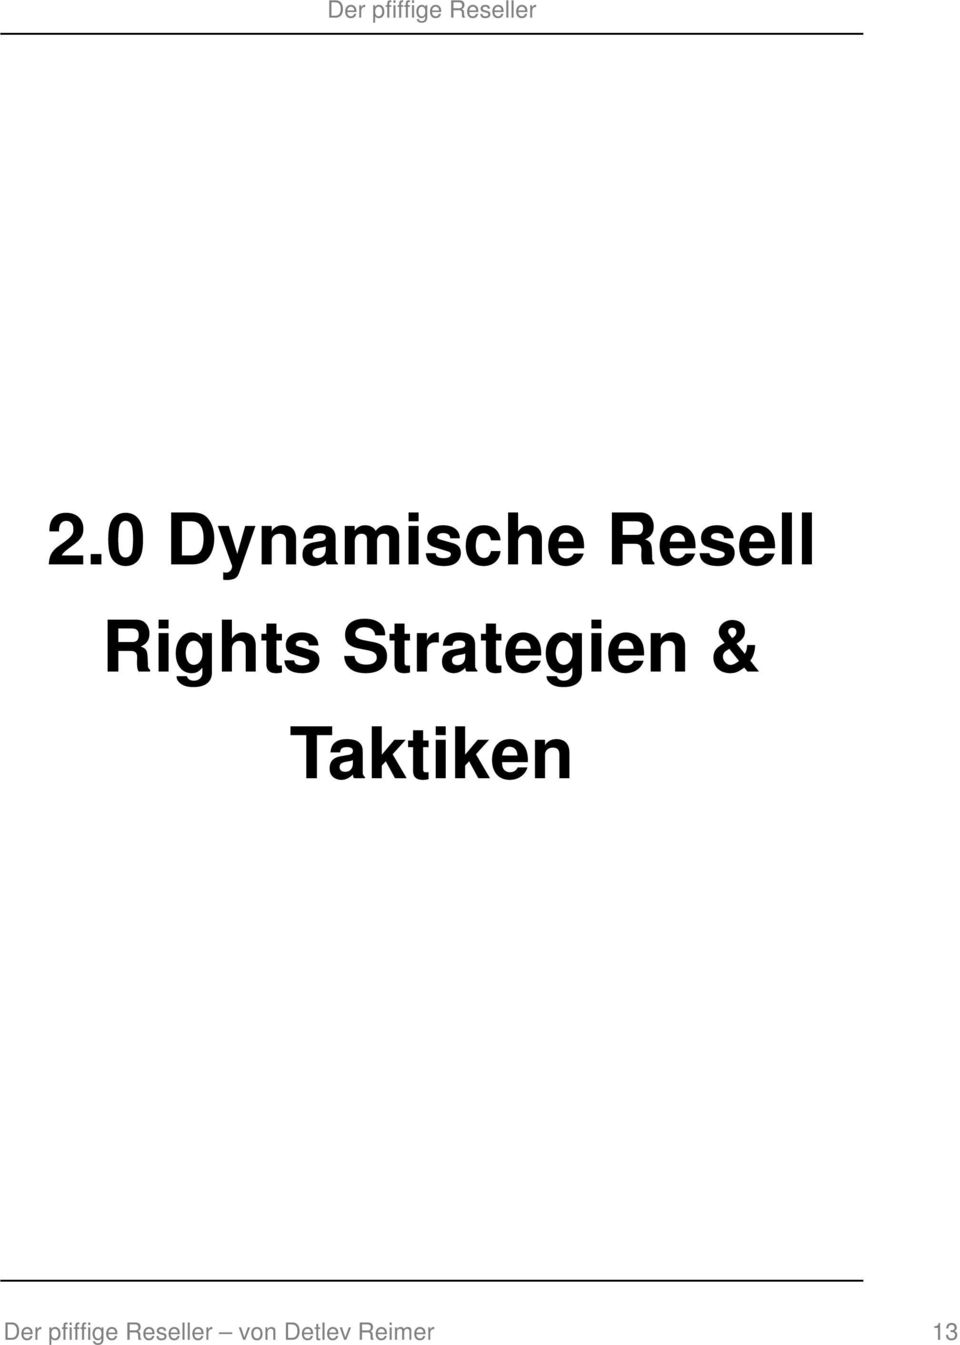 HTTP://REIKI-PFERDE-VERDEN.DE/PDF/BOOK-DYNAMIC-ARCHITECTURE-HOW-TO-MAKE-ENTERPRISE-ARCHITECTURE-A-SUCCESS-2005/